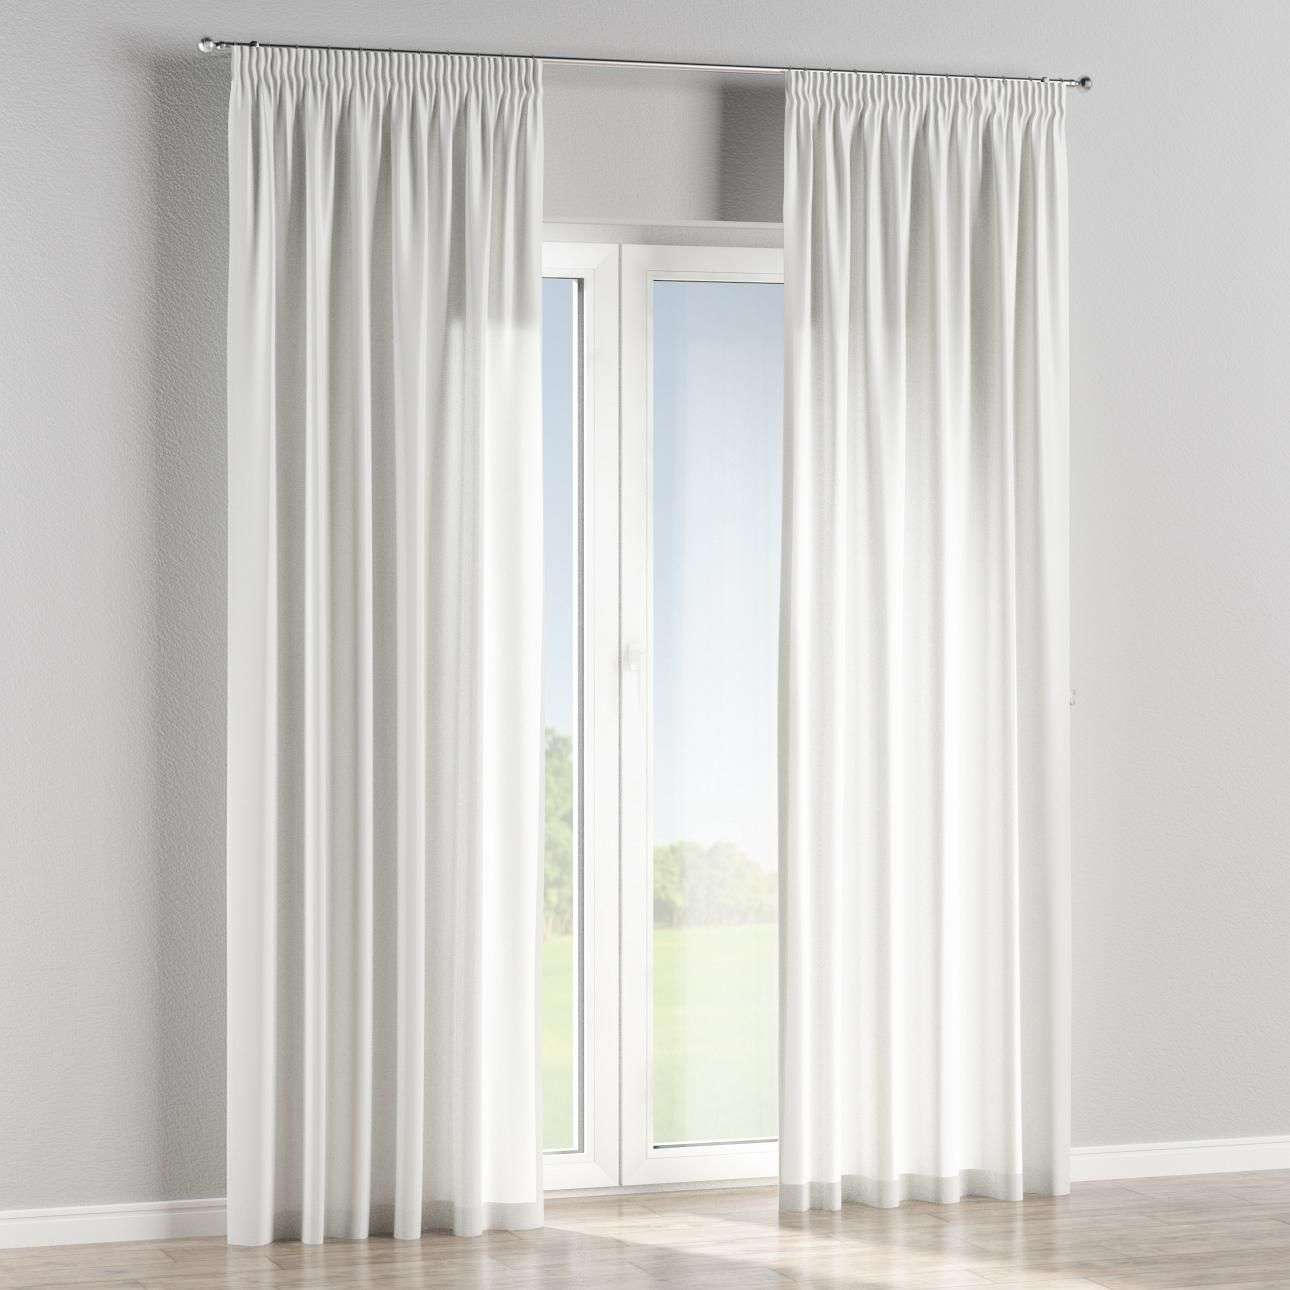 Pencil pleat lined curtains in collection Freestyle, fabric: 150-05